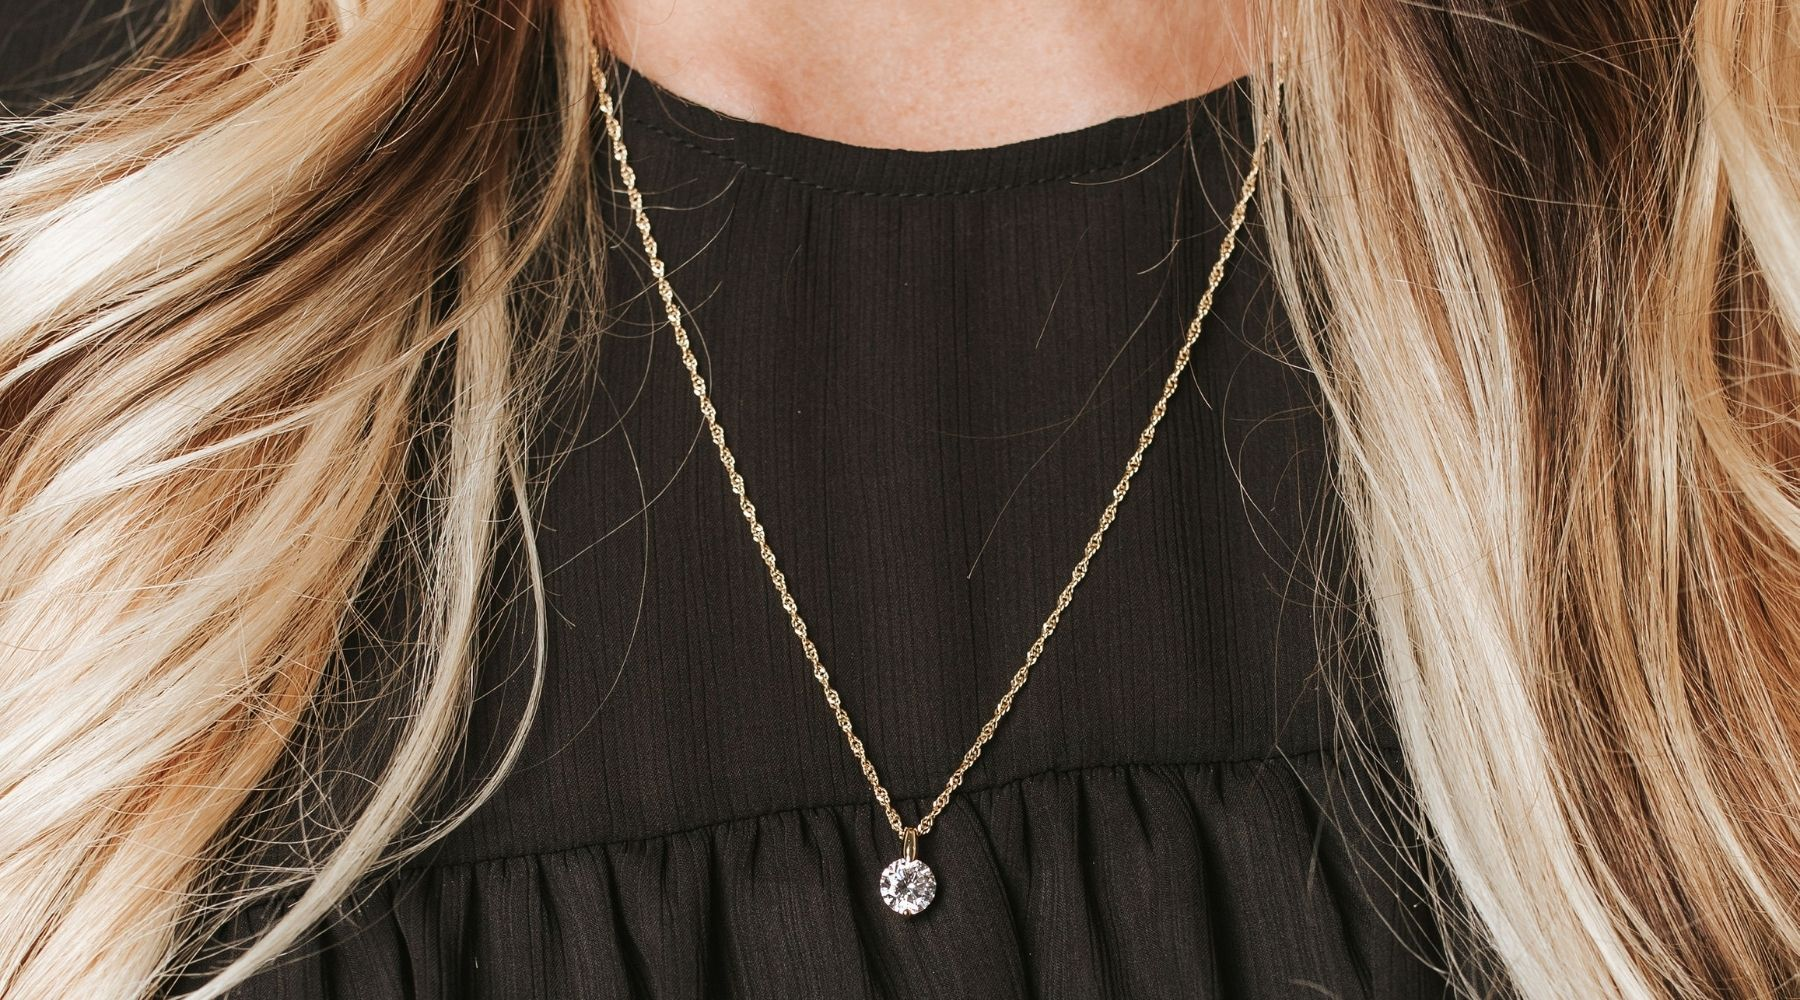 Designer Necklaces: How to Choose the Right Length [Updated 2020]